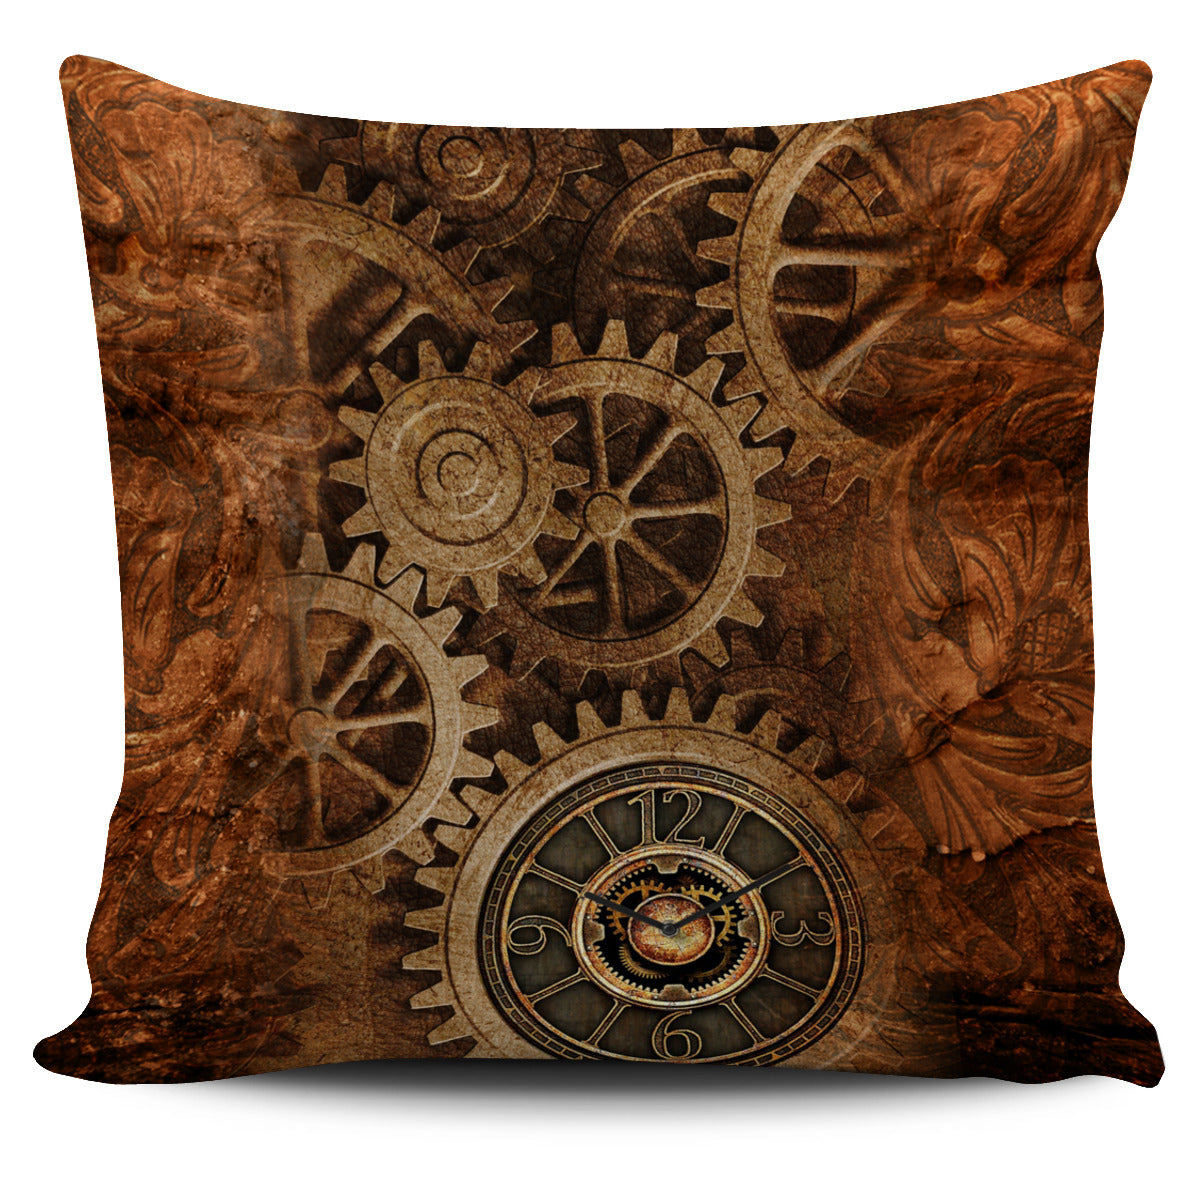 Steampunk Pillow Case